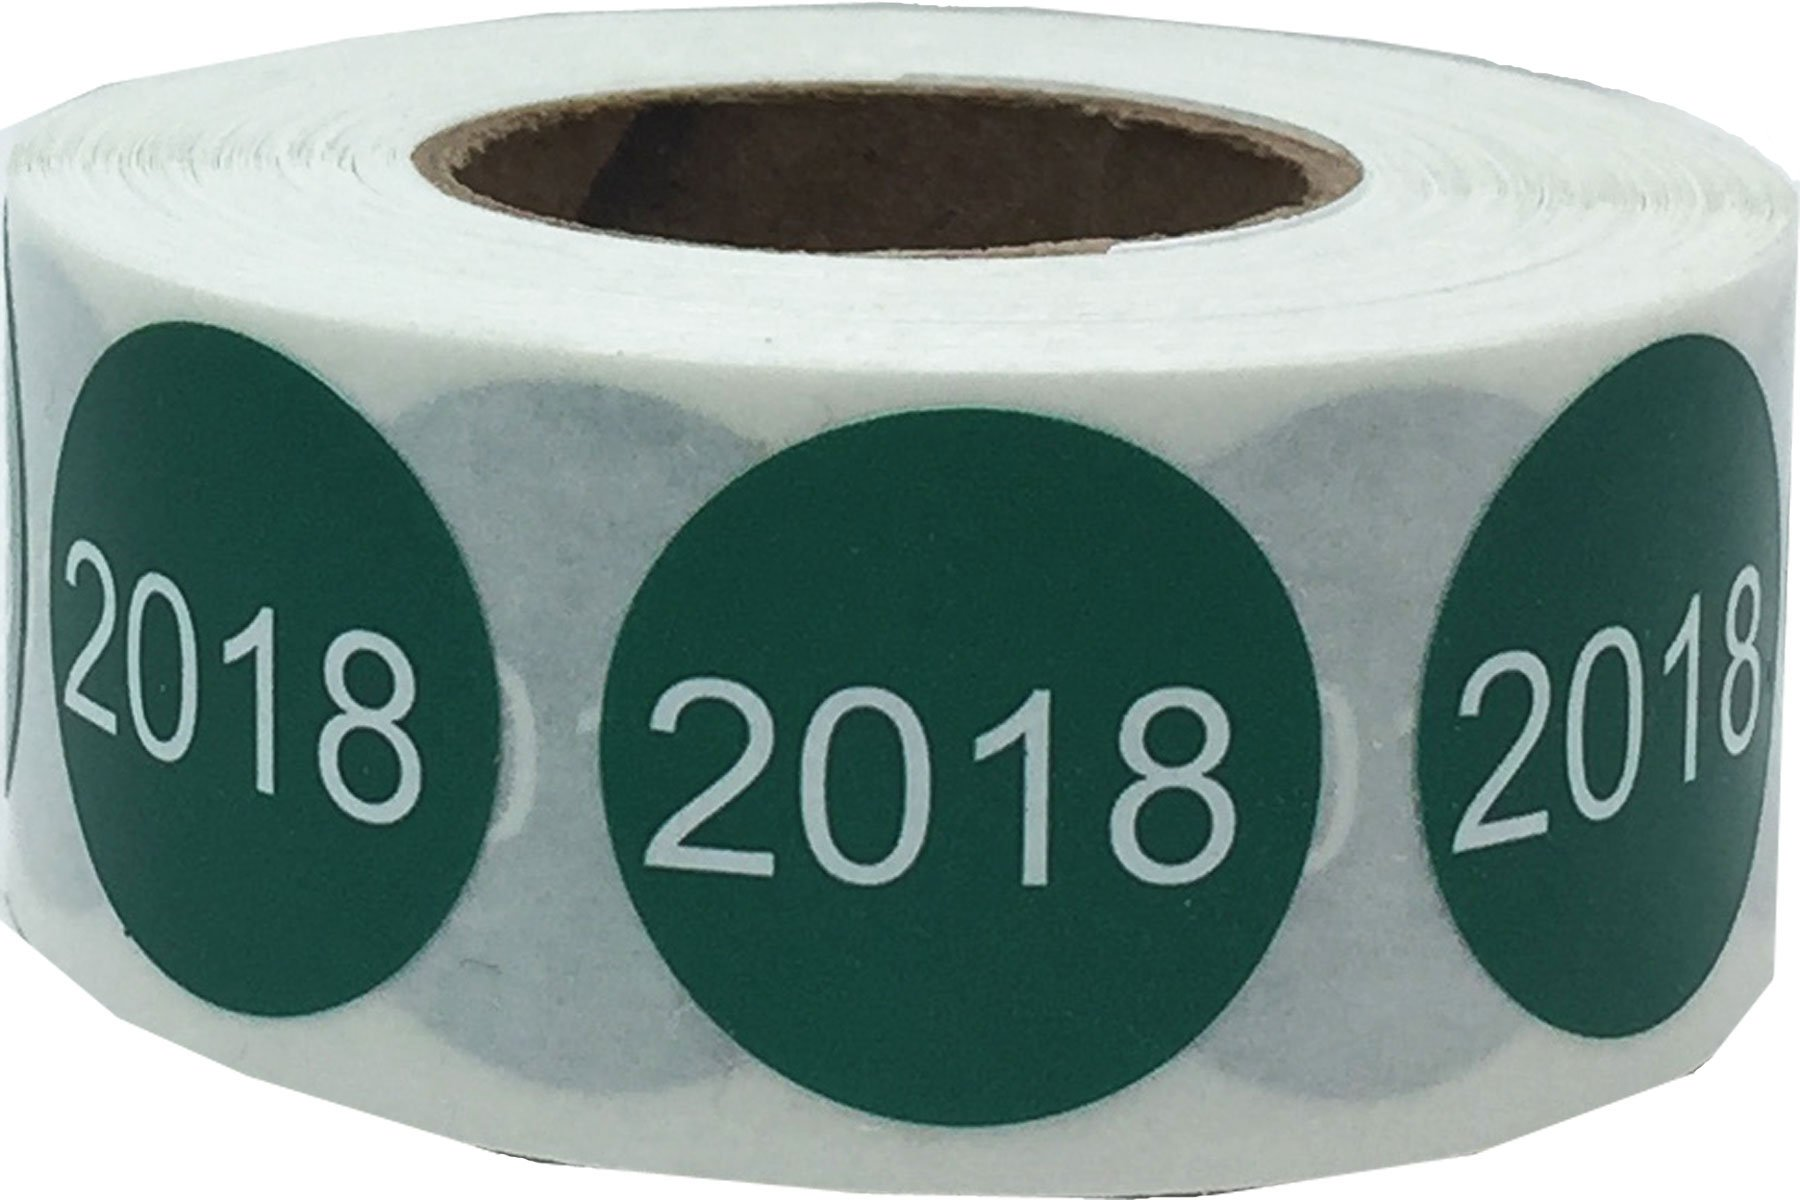 Green 2018 Circle Dot Stickers, 3/4 Inch Round, 500 Labels on a Roll